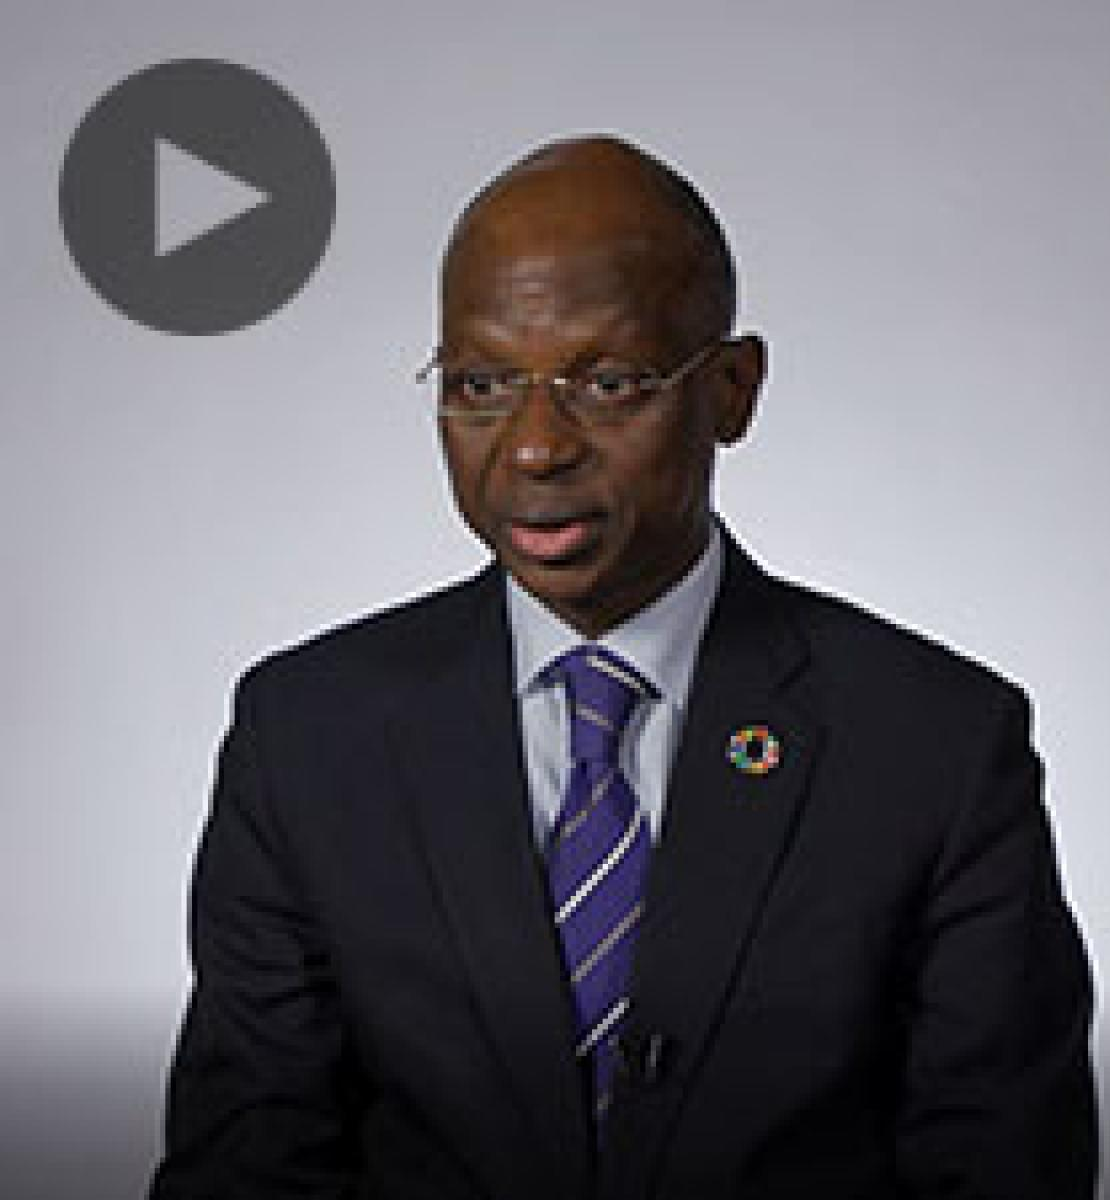 Screenshot from video message shows Resident Coordinator, Siaka Coulibaly